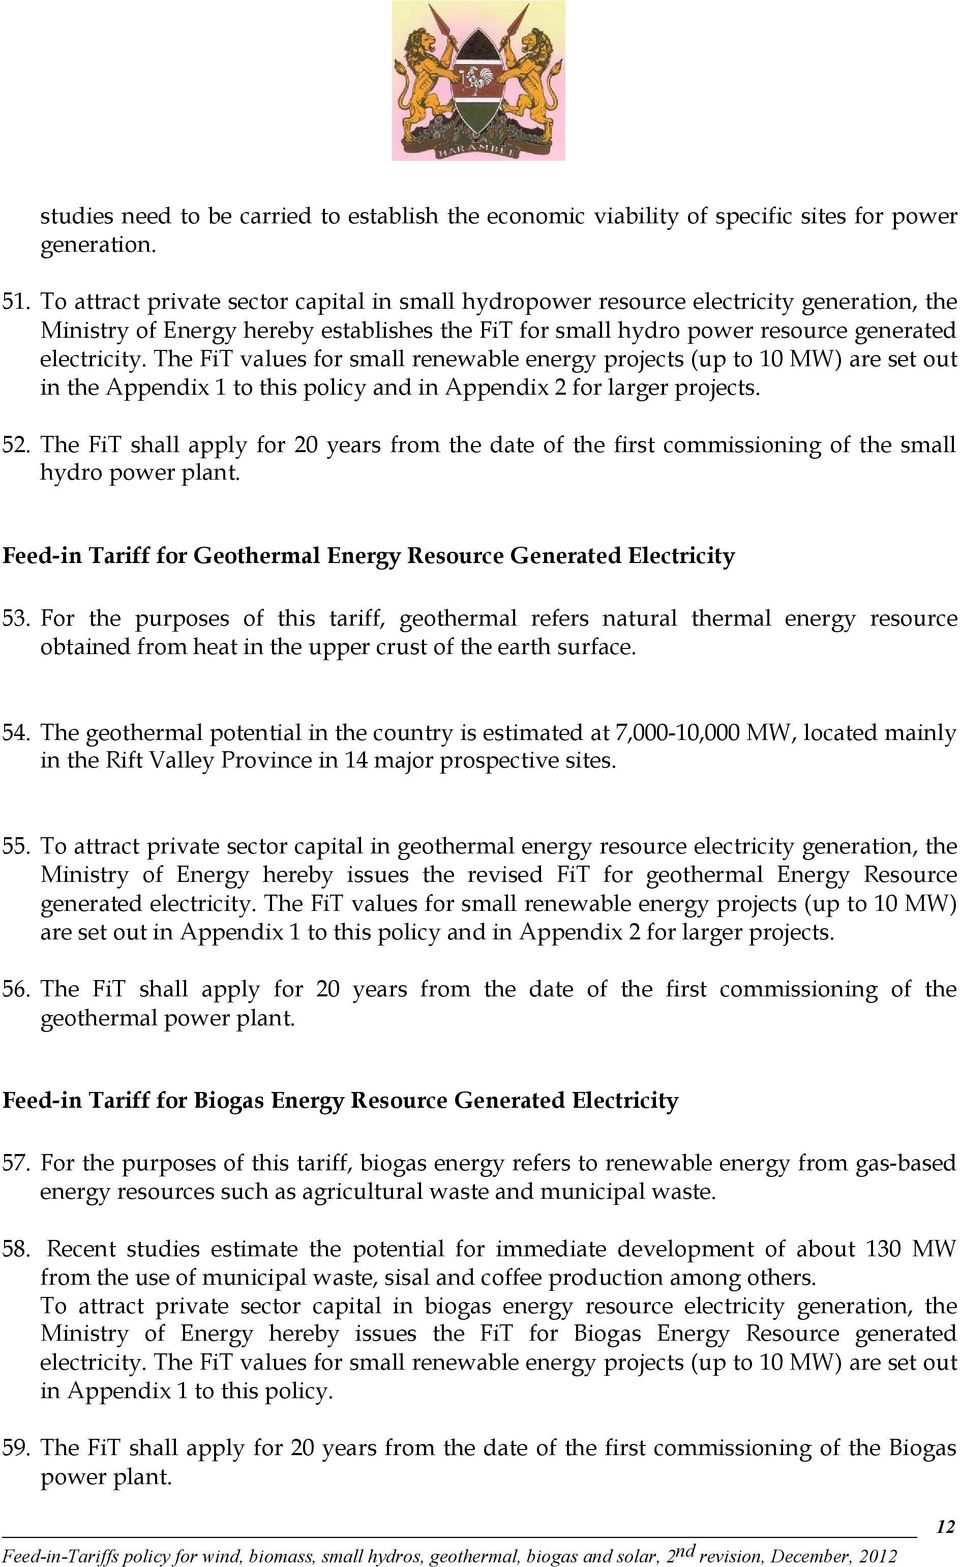 The FiT values for small renewable energy projects (up to 10 MW) are set out in the Appendix 1 to this policy and in Appendix 2 for larger projects. 52.